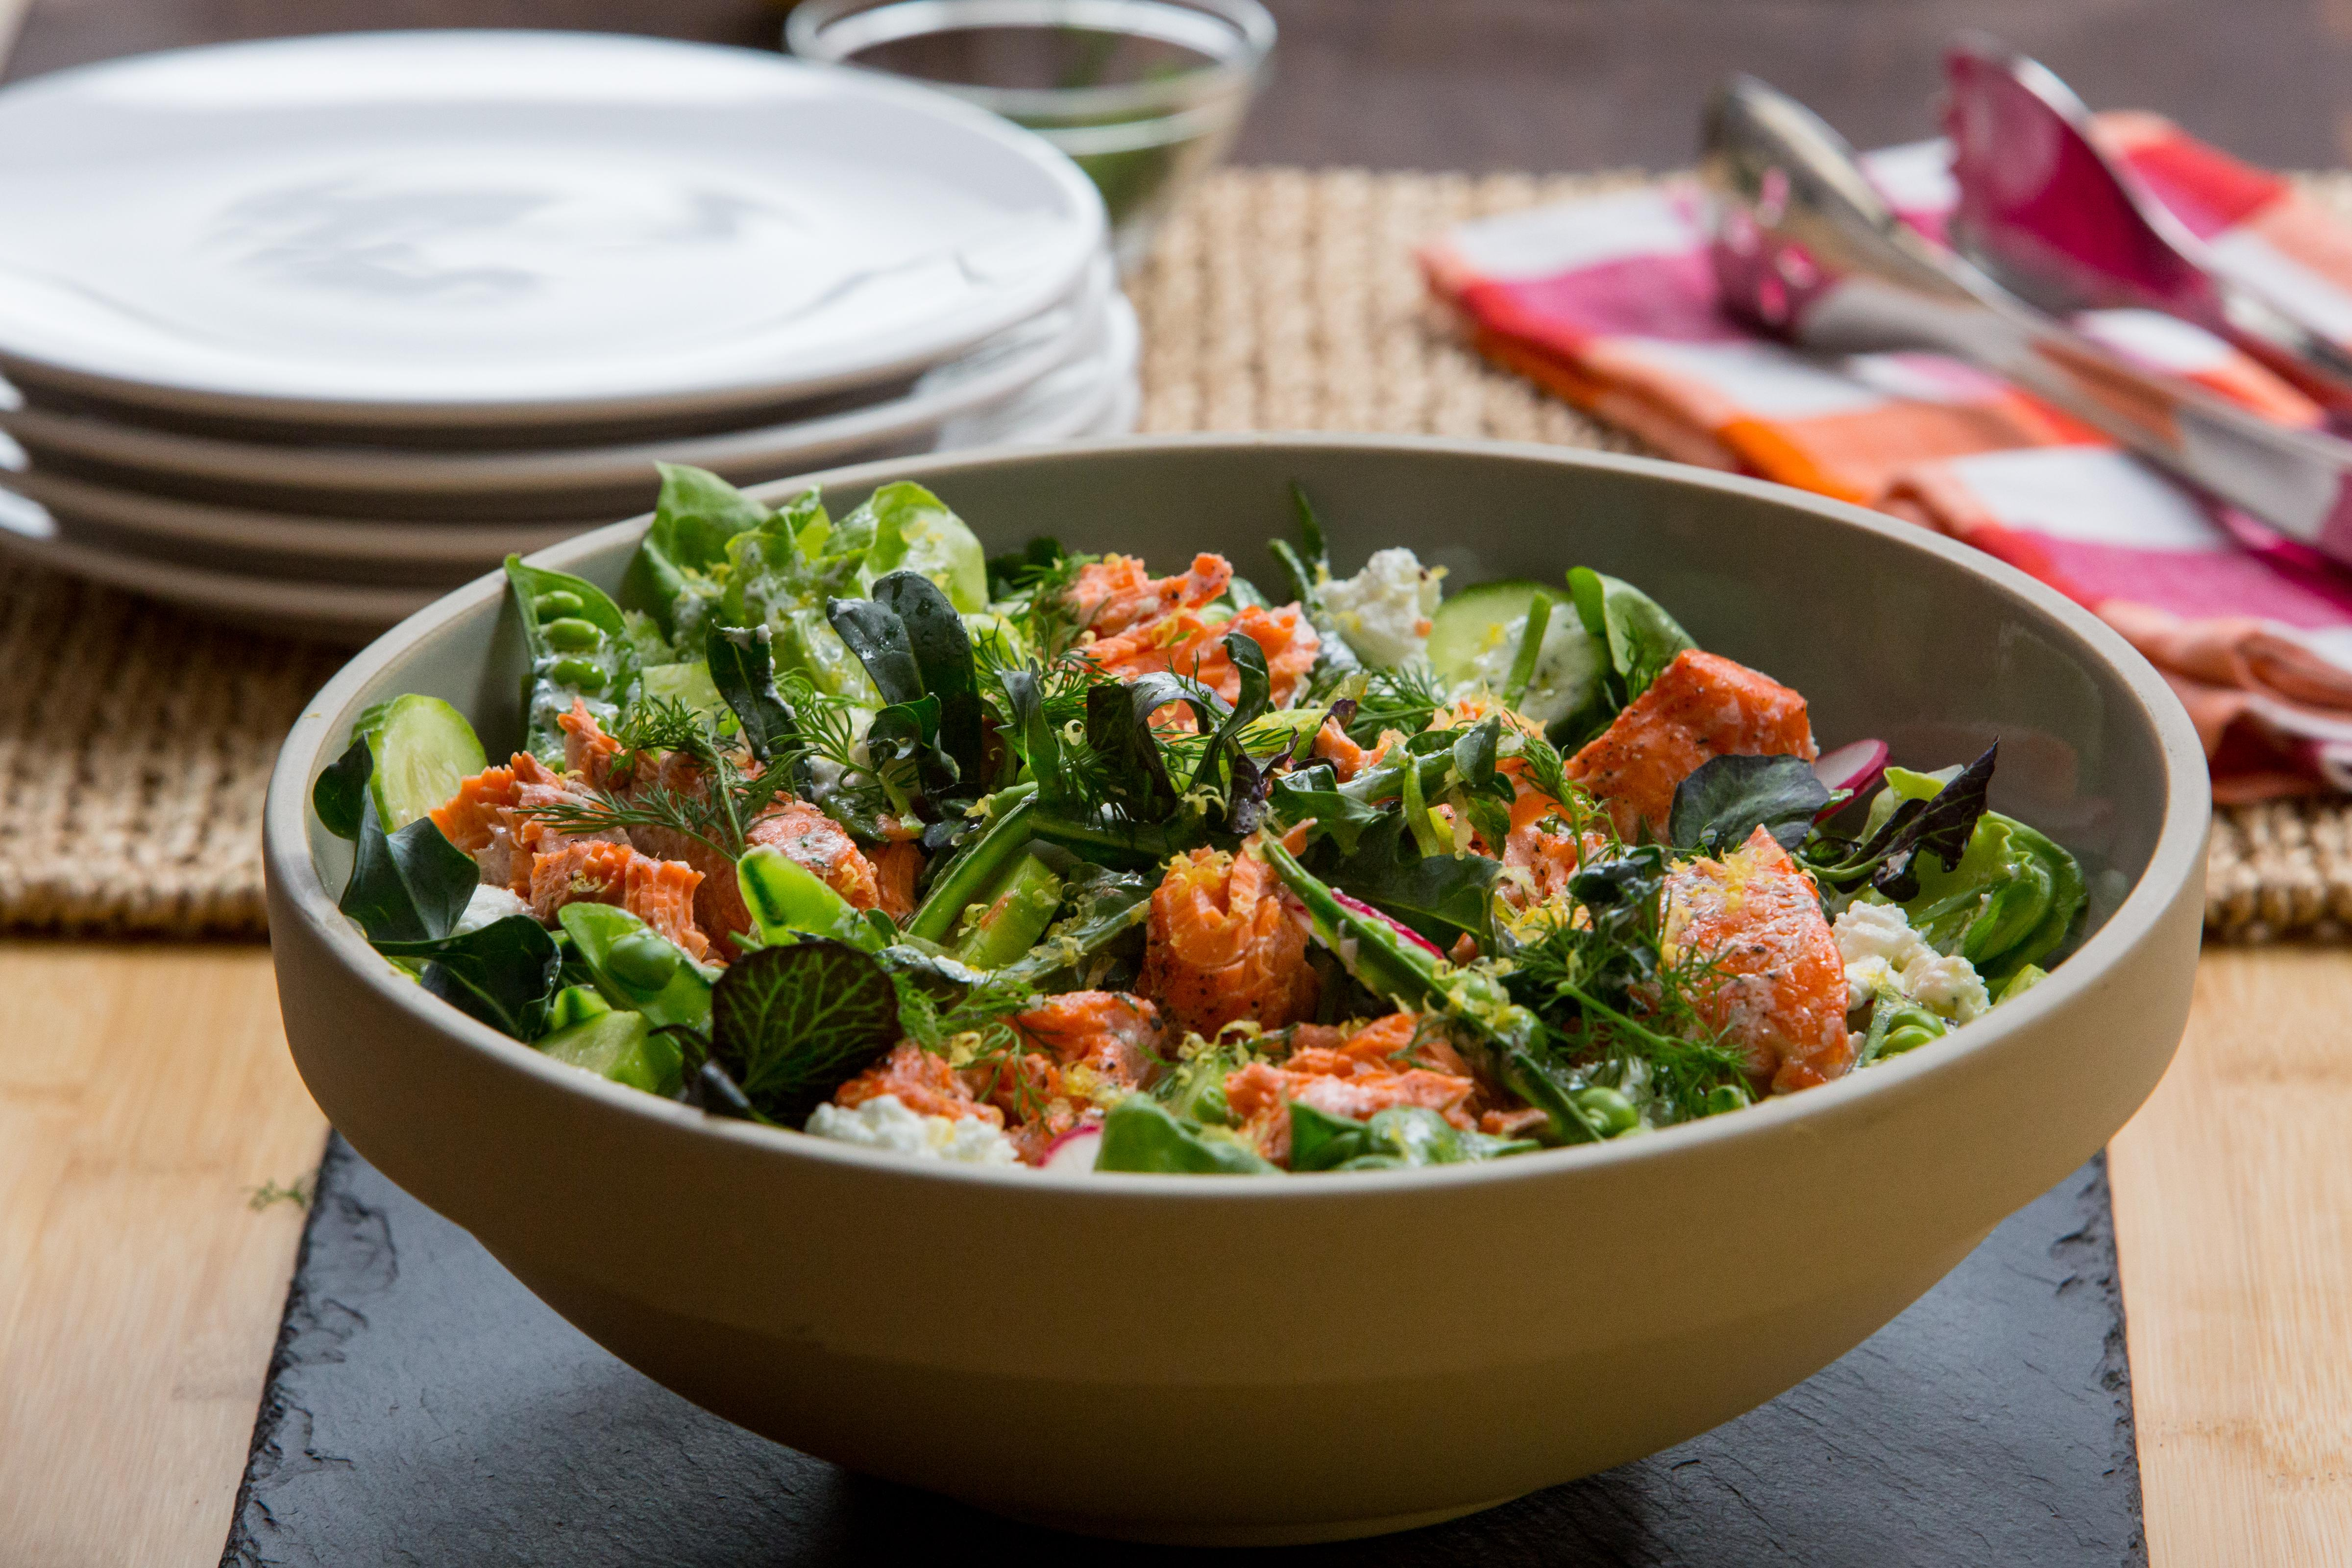 This salmon salad and lemon yogurt dressing are the perfect pair